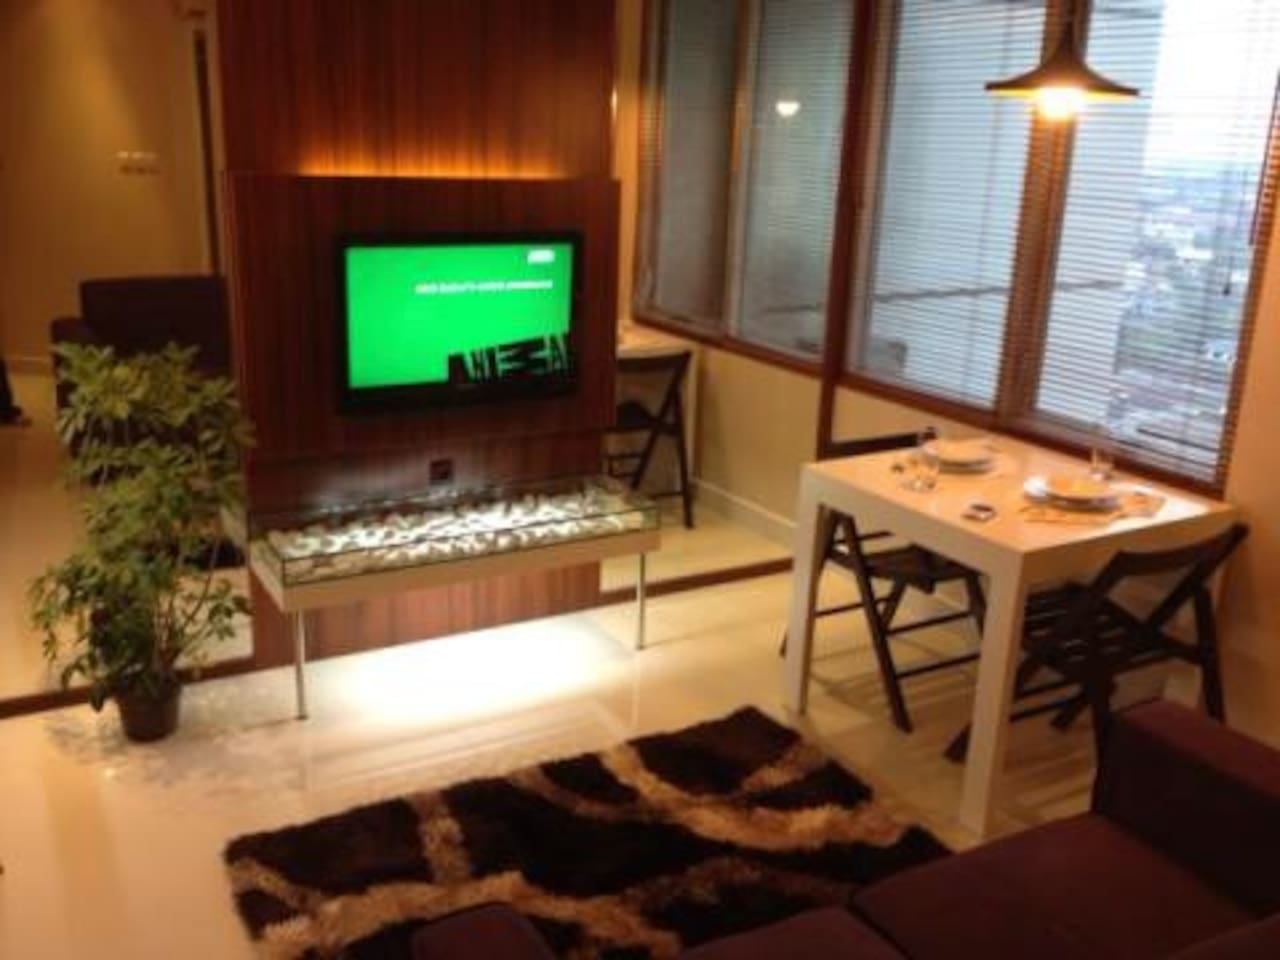 Our another 1BR apartment located in CBD area of Jakarta, and in the same building (17th floor) with cozy and minimalist design with all facilities : microwave, dispenser, cable TV, washing machine, and internet. Also you can use our apartment facilities